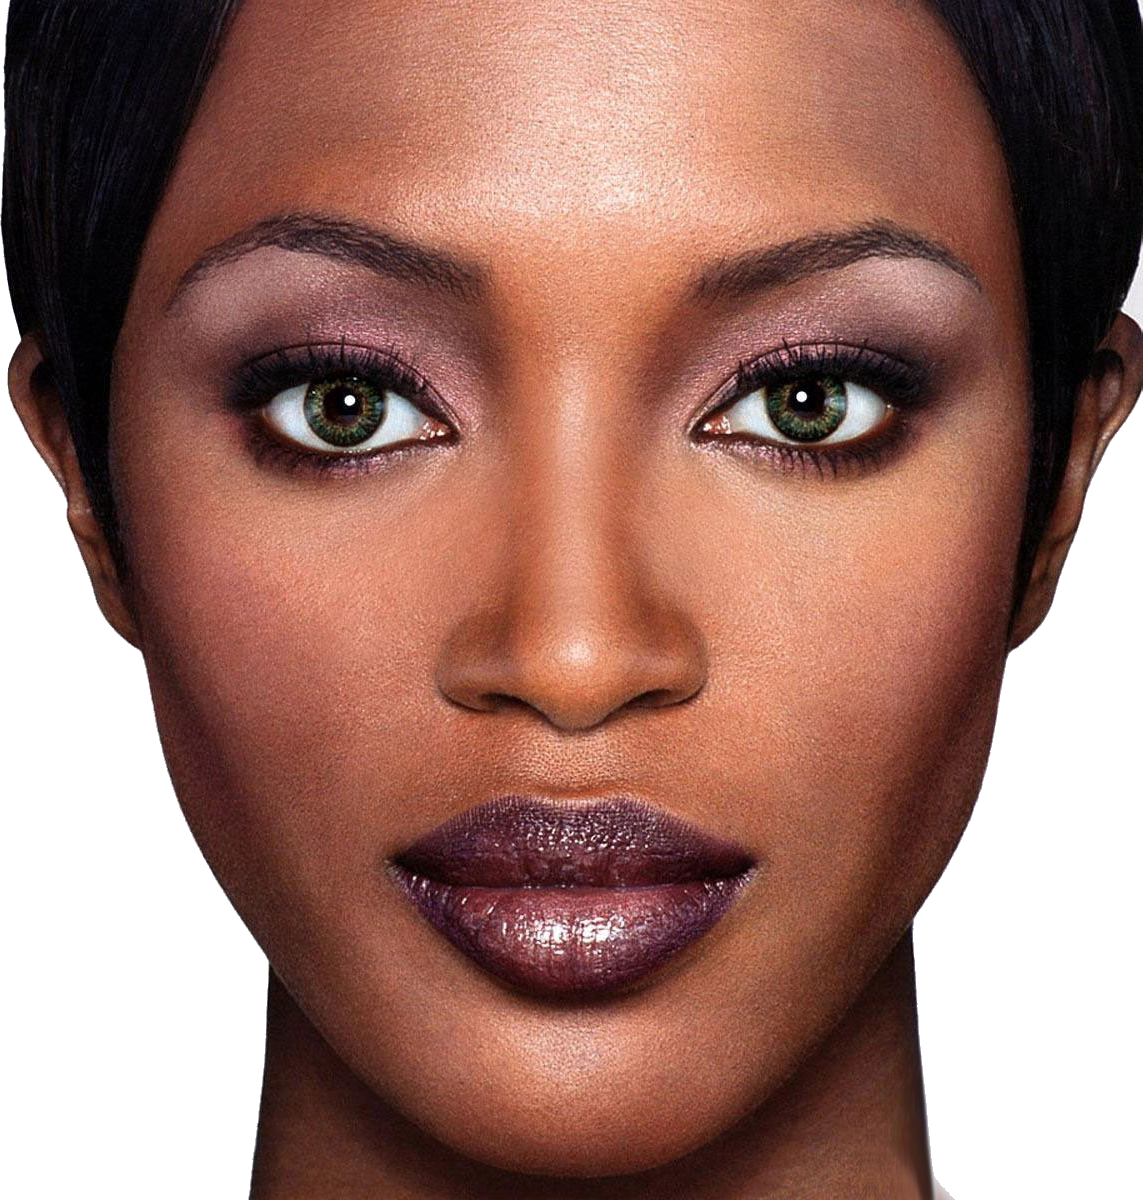 Beauty Women Face Png image #42672